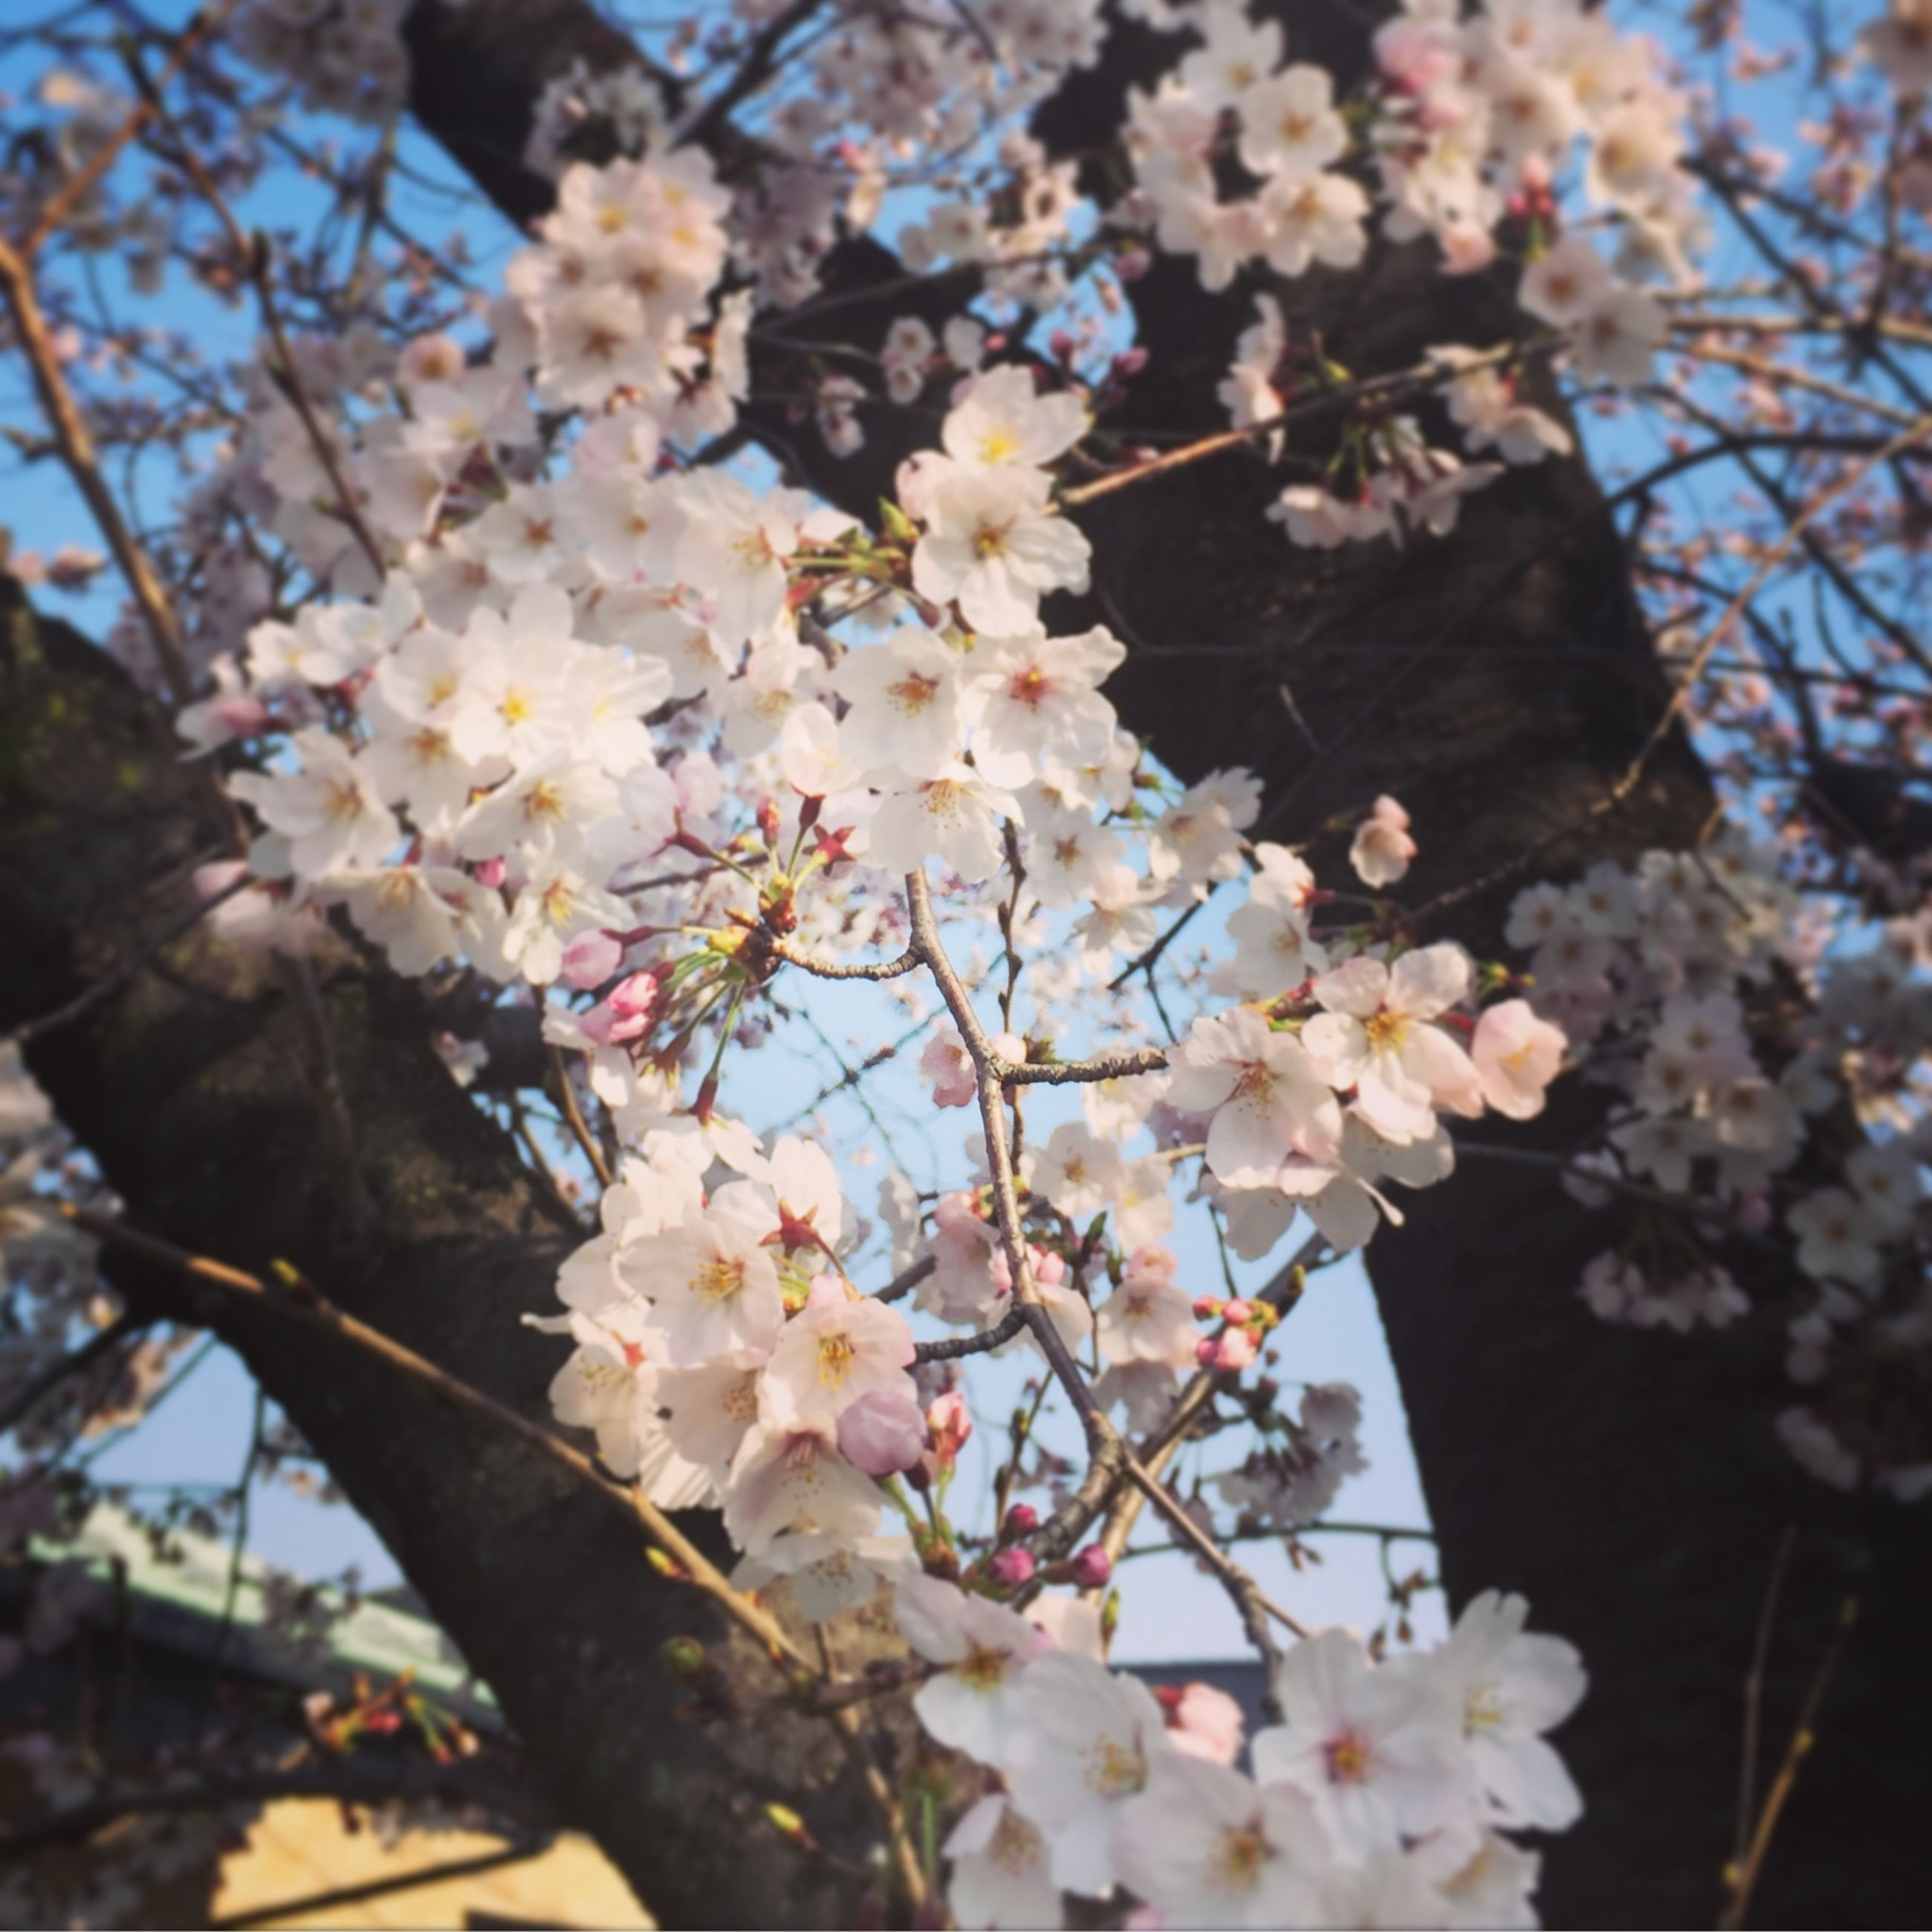 flower, freshness, branch, growth, fragility, tree, cherry blossom, beauty in nature, blossom, petal, nature, cherry tree, blooming, focus on foreground, in bloom, springtime, close-up, flower head, white color, fruit tree